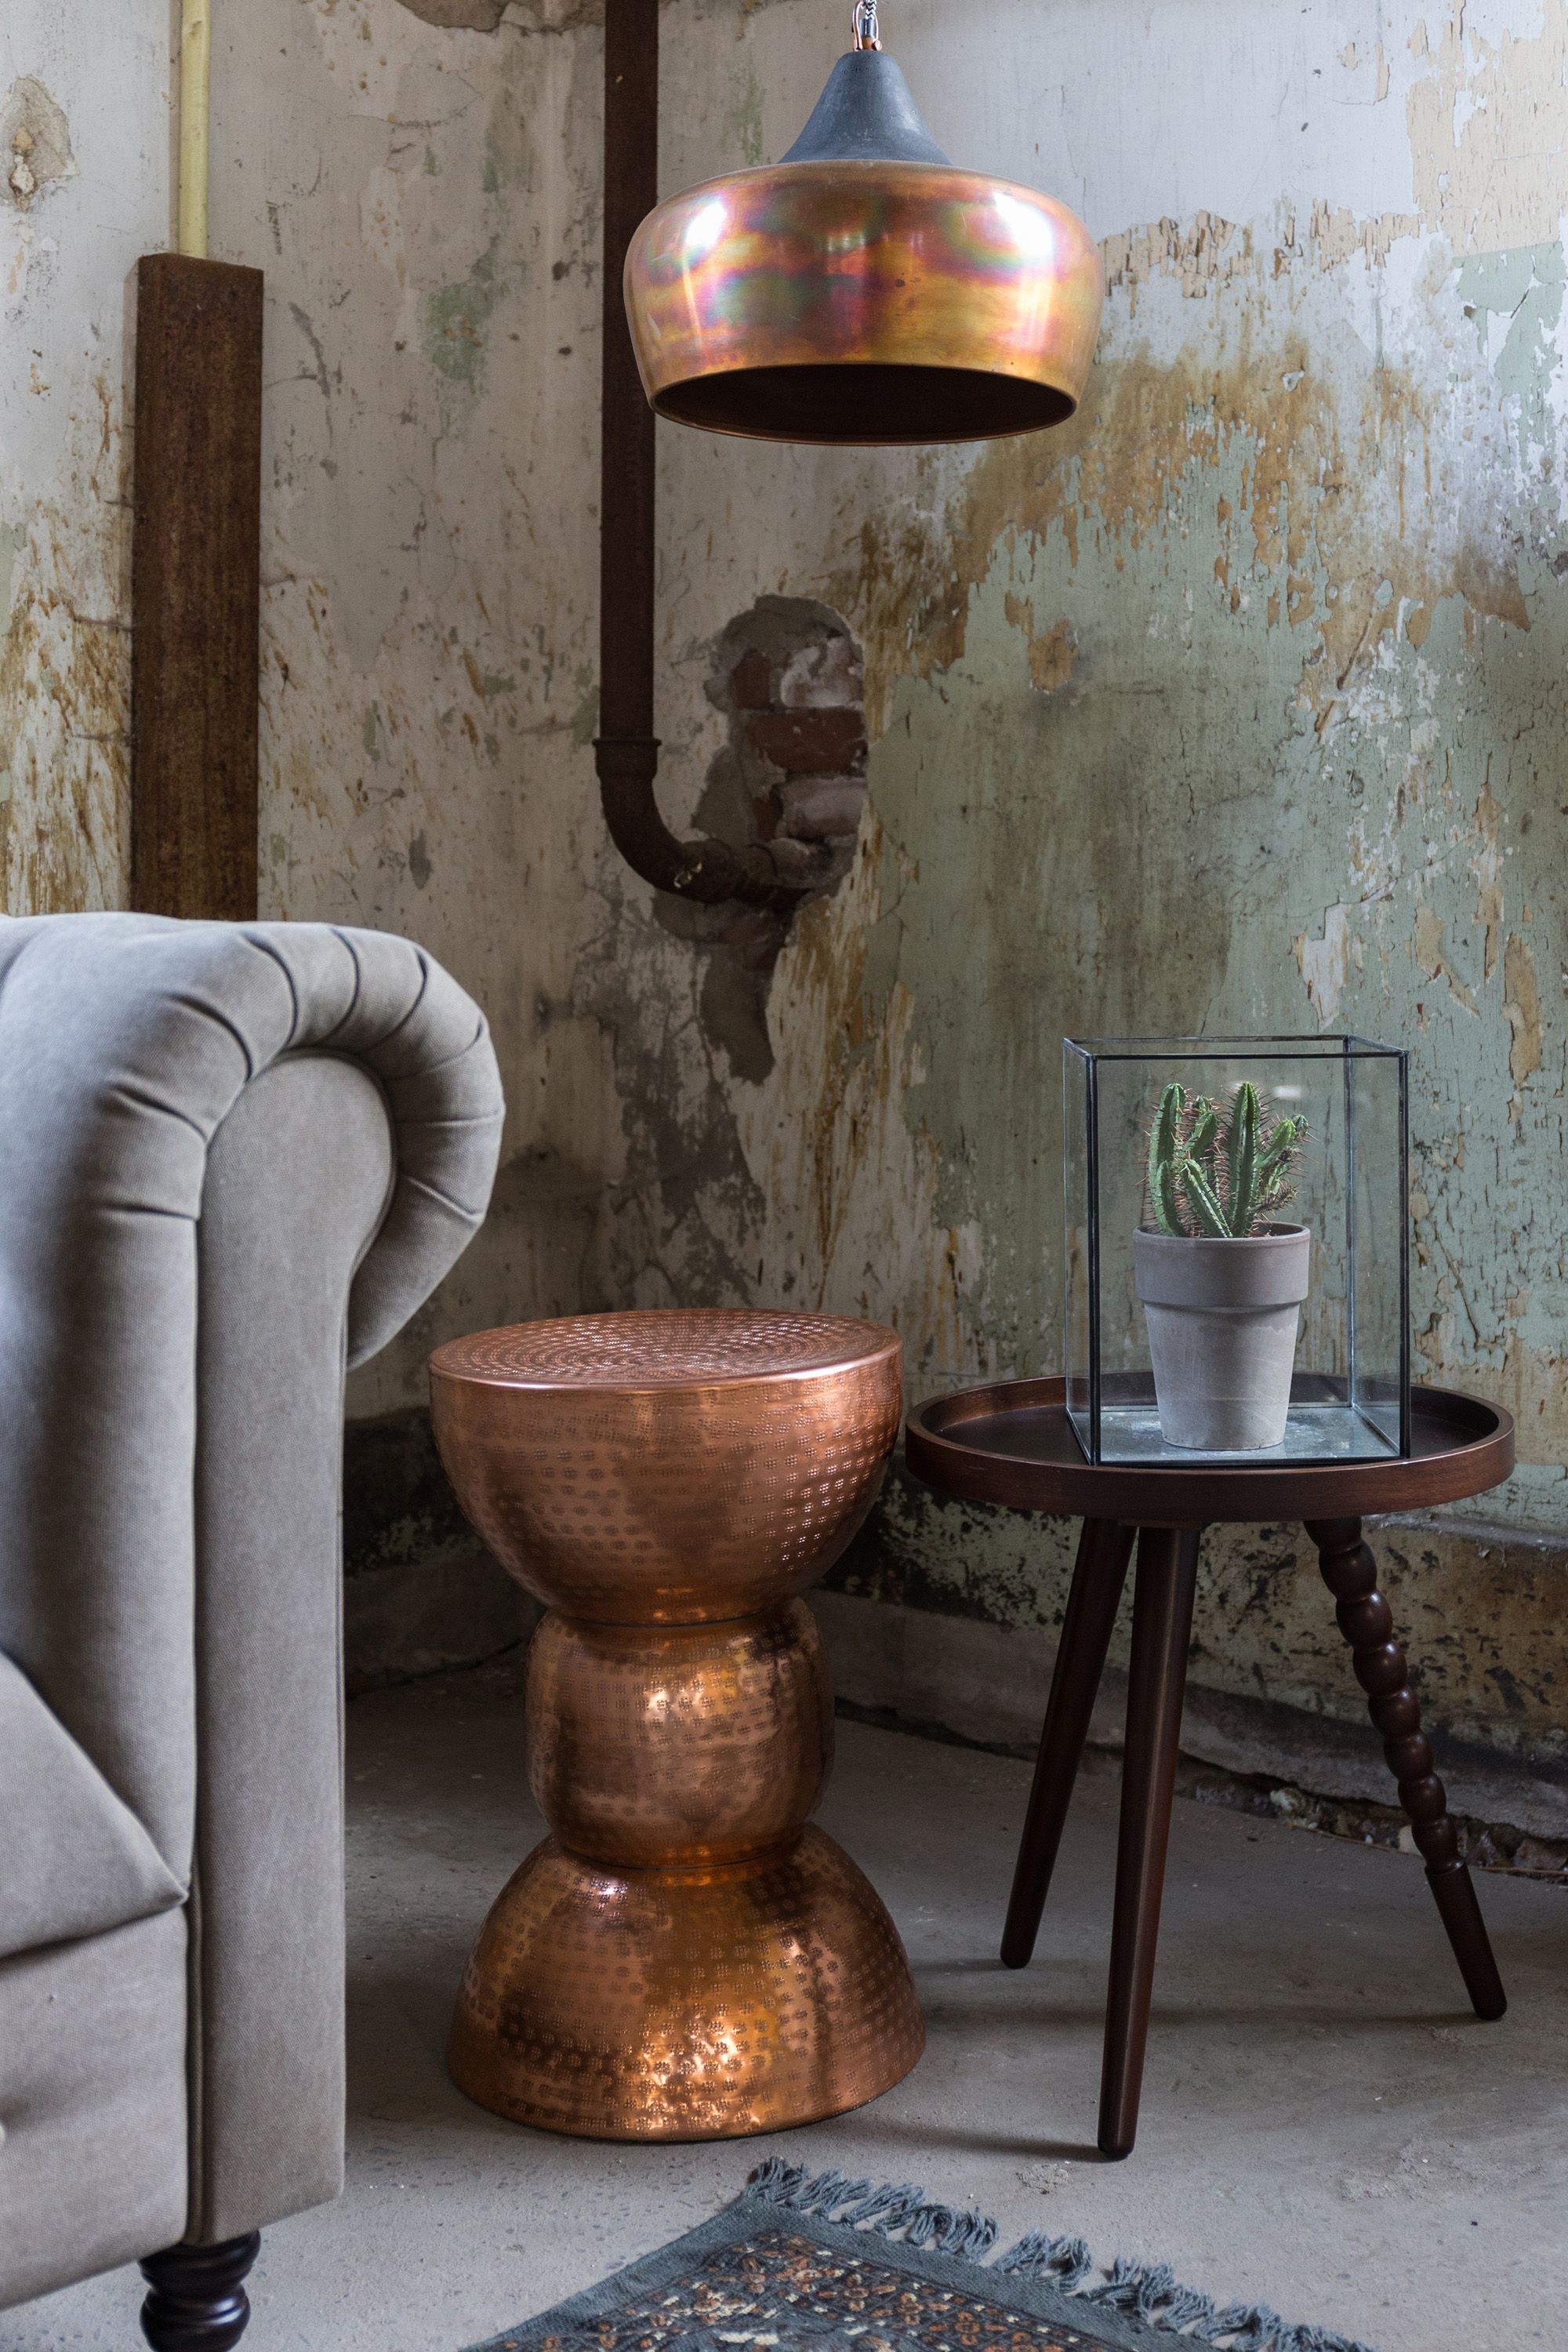 Copper Warung Stool and Coco Pendant Lamp from Dutchbone. See more Copper inspirations at http://www.brabbu.com/en/inspiration-and-ideas/ #CopperLighting #CopperDesign #CopperDecoration